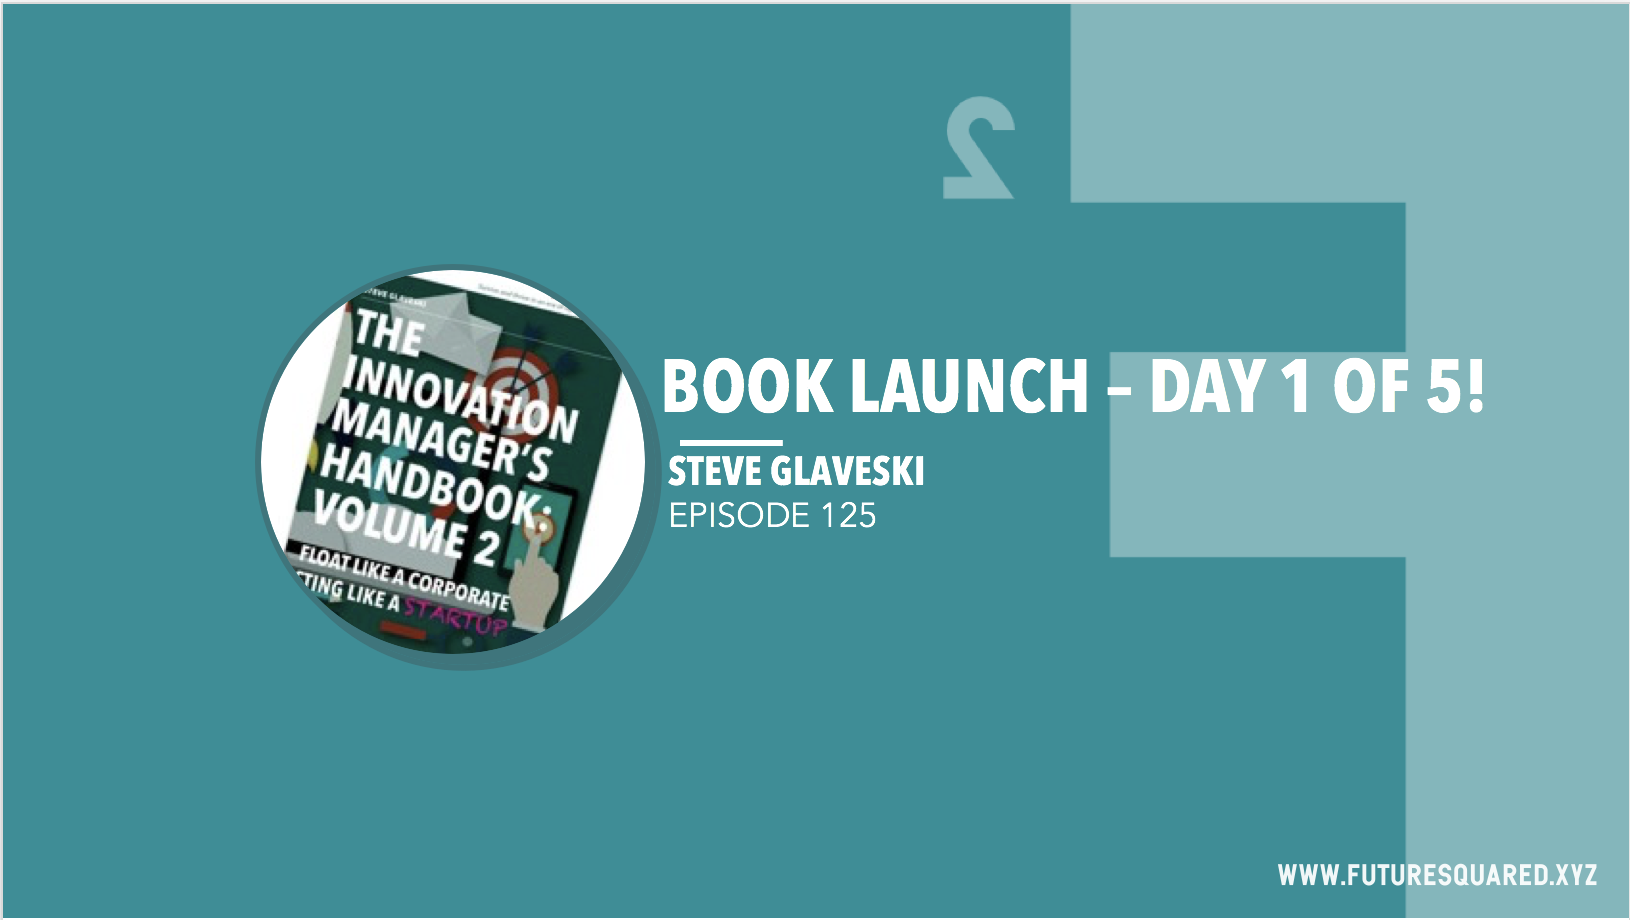 Future Squared Episode #125: Book Launch Day 1 of 5!